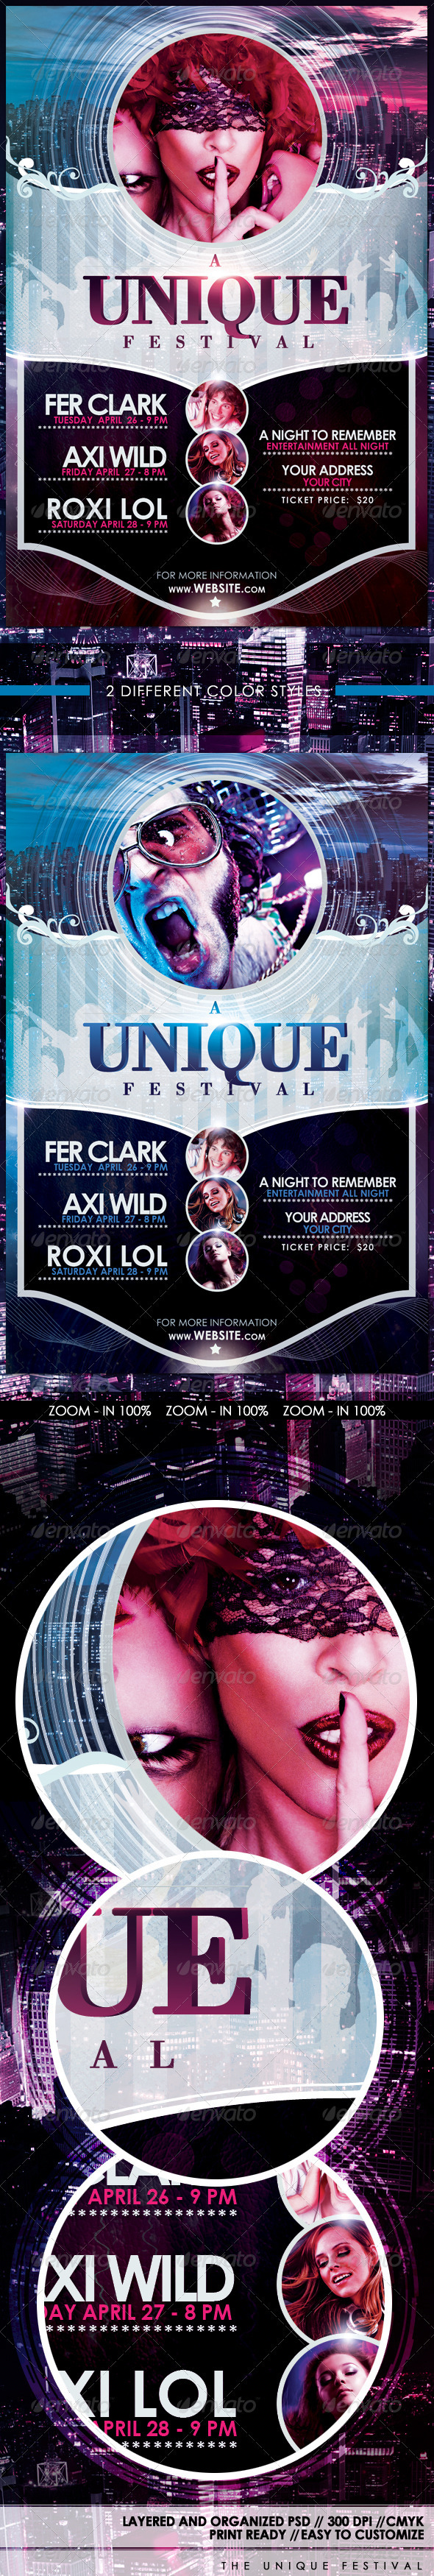 A Unique Festival Flyer Template - Clubs & Parties Events